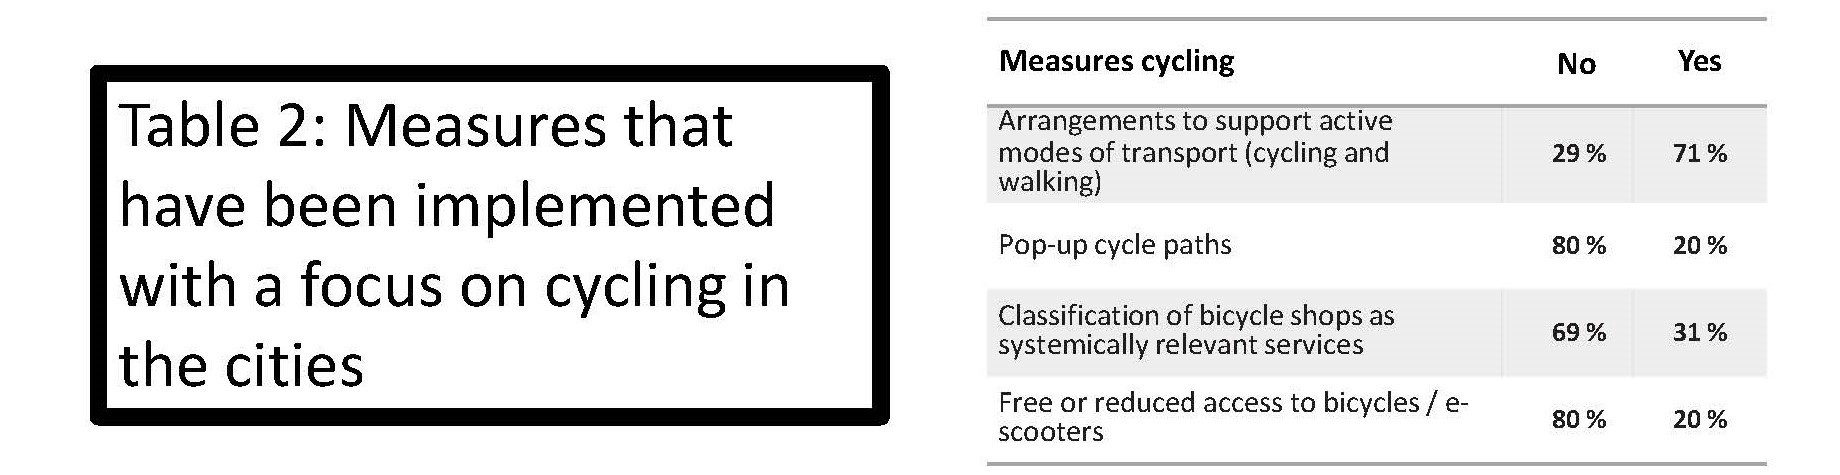 Measures that have been implemented with a focus on cycling in cities